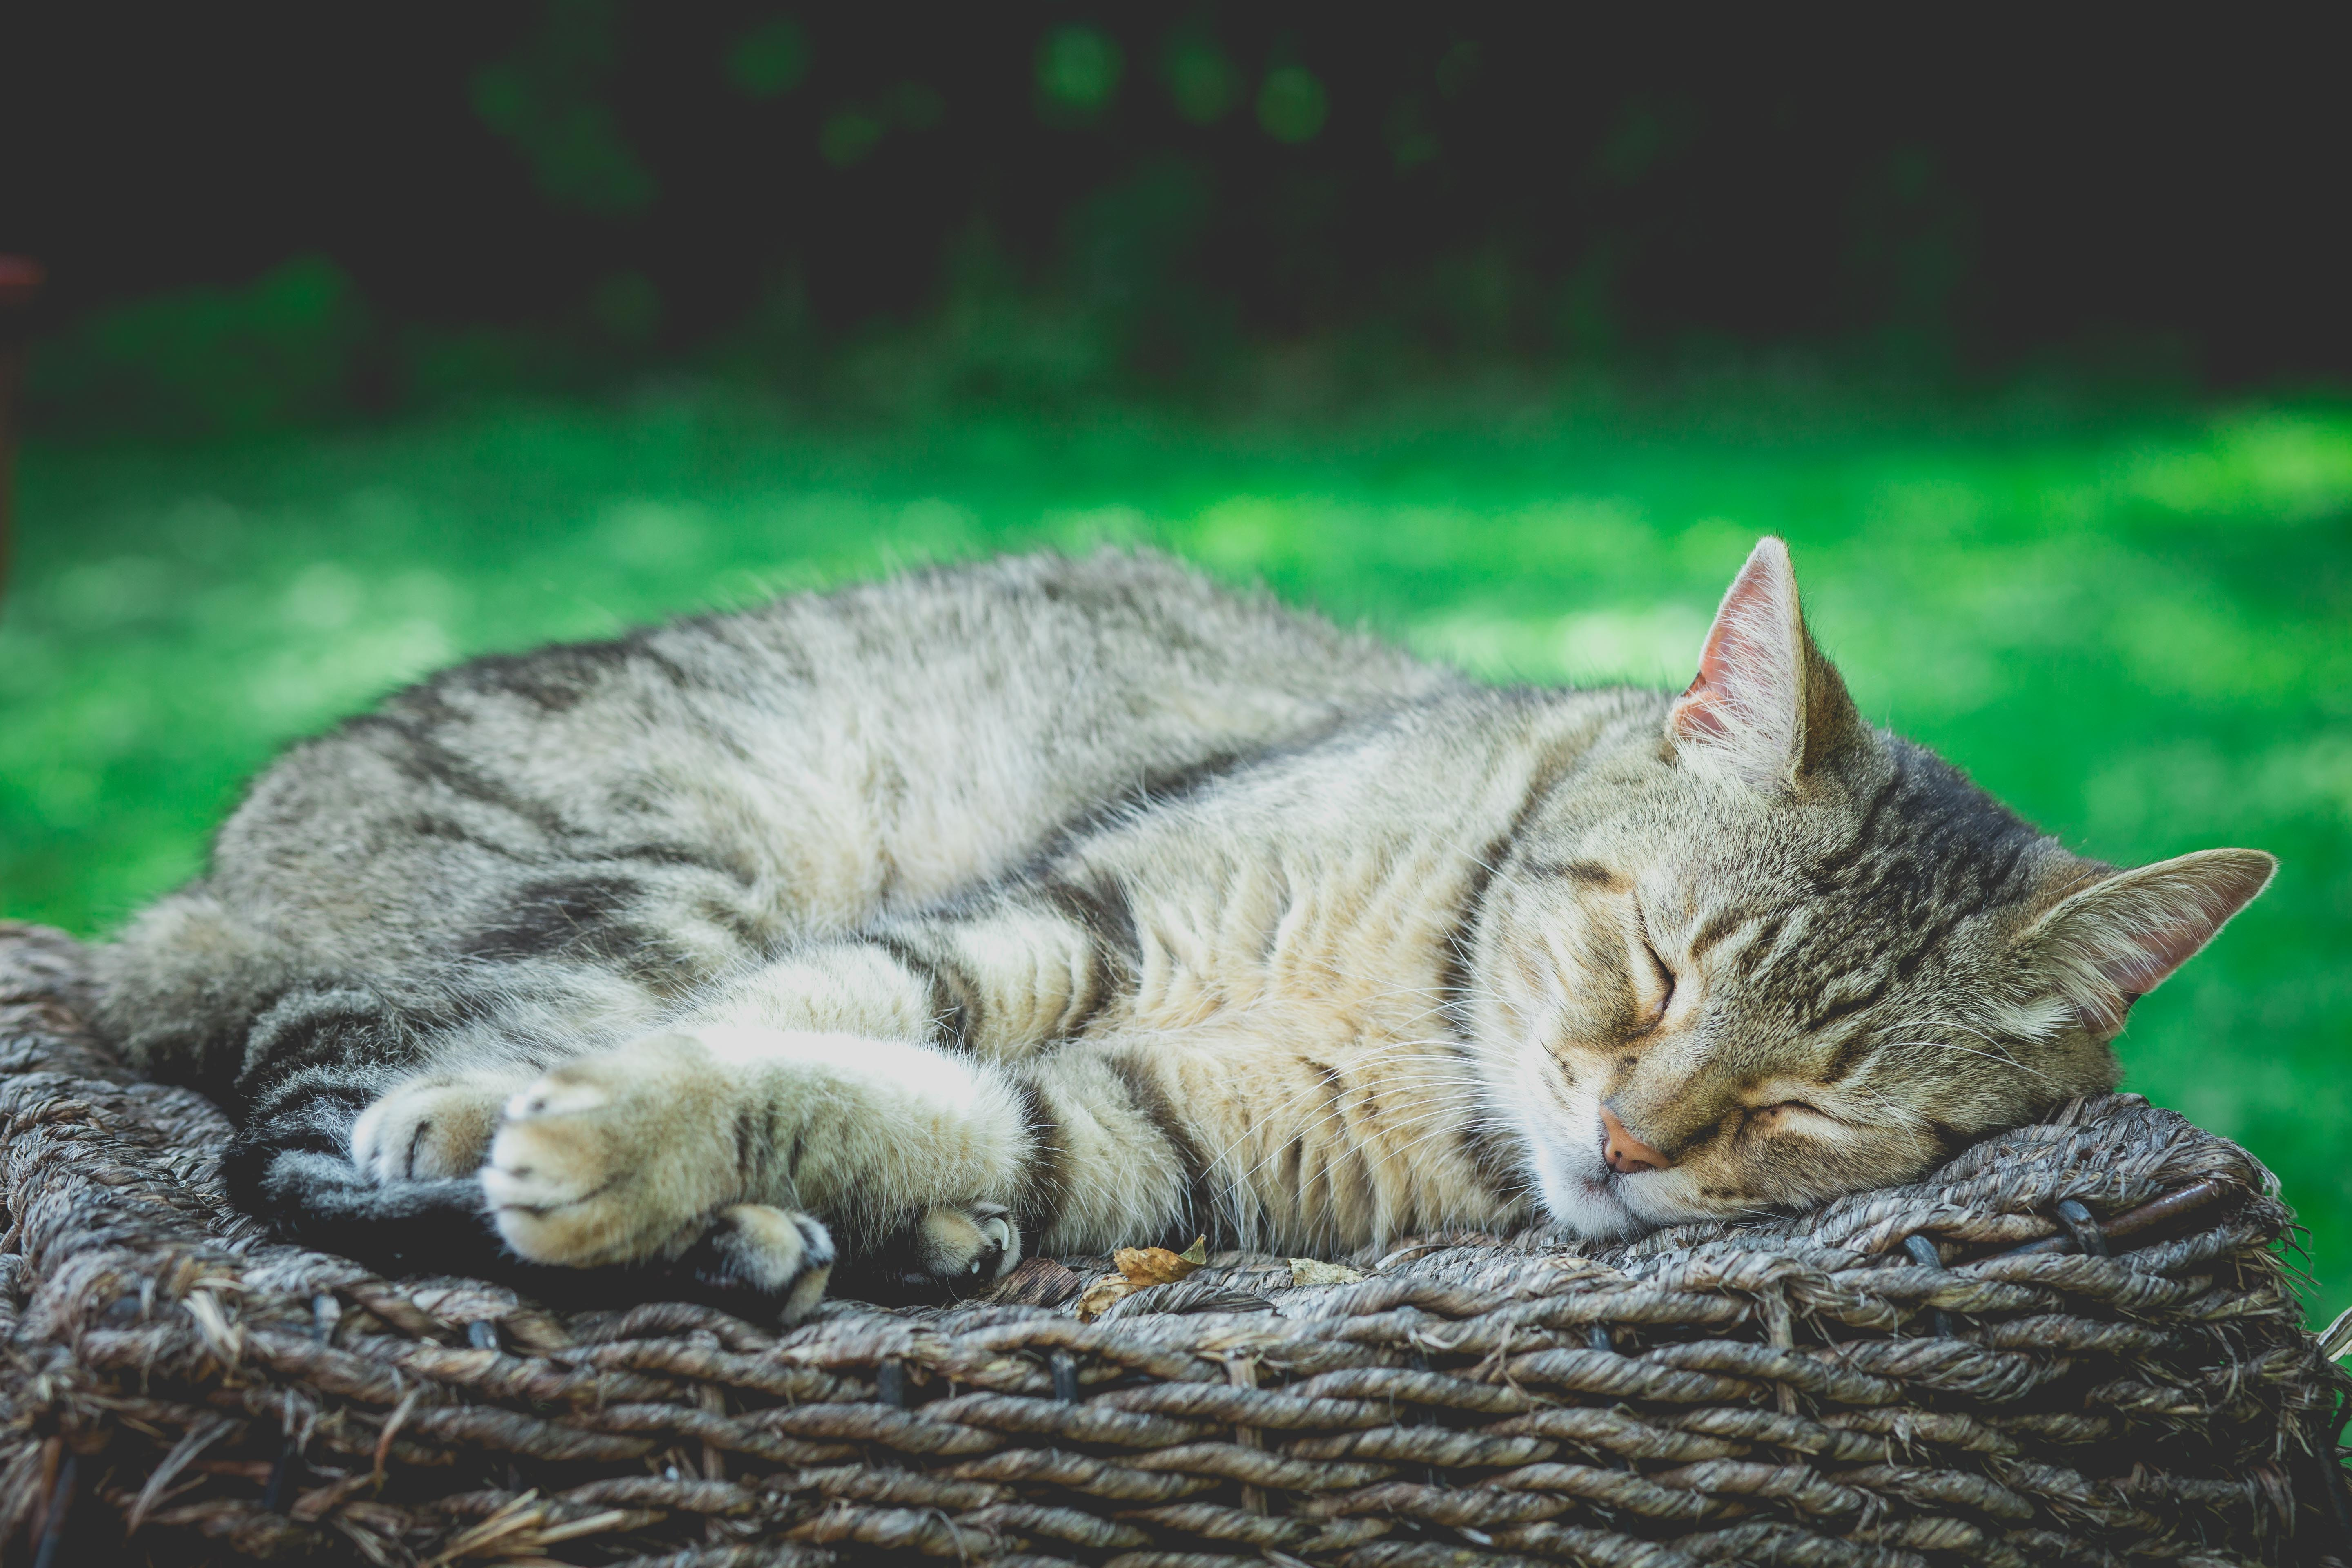 tabby cat sleeping on brown rattan at daytime